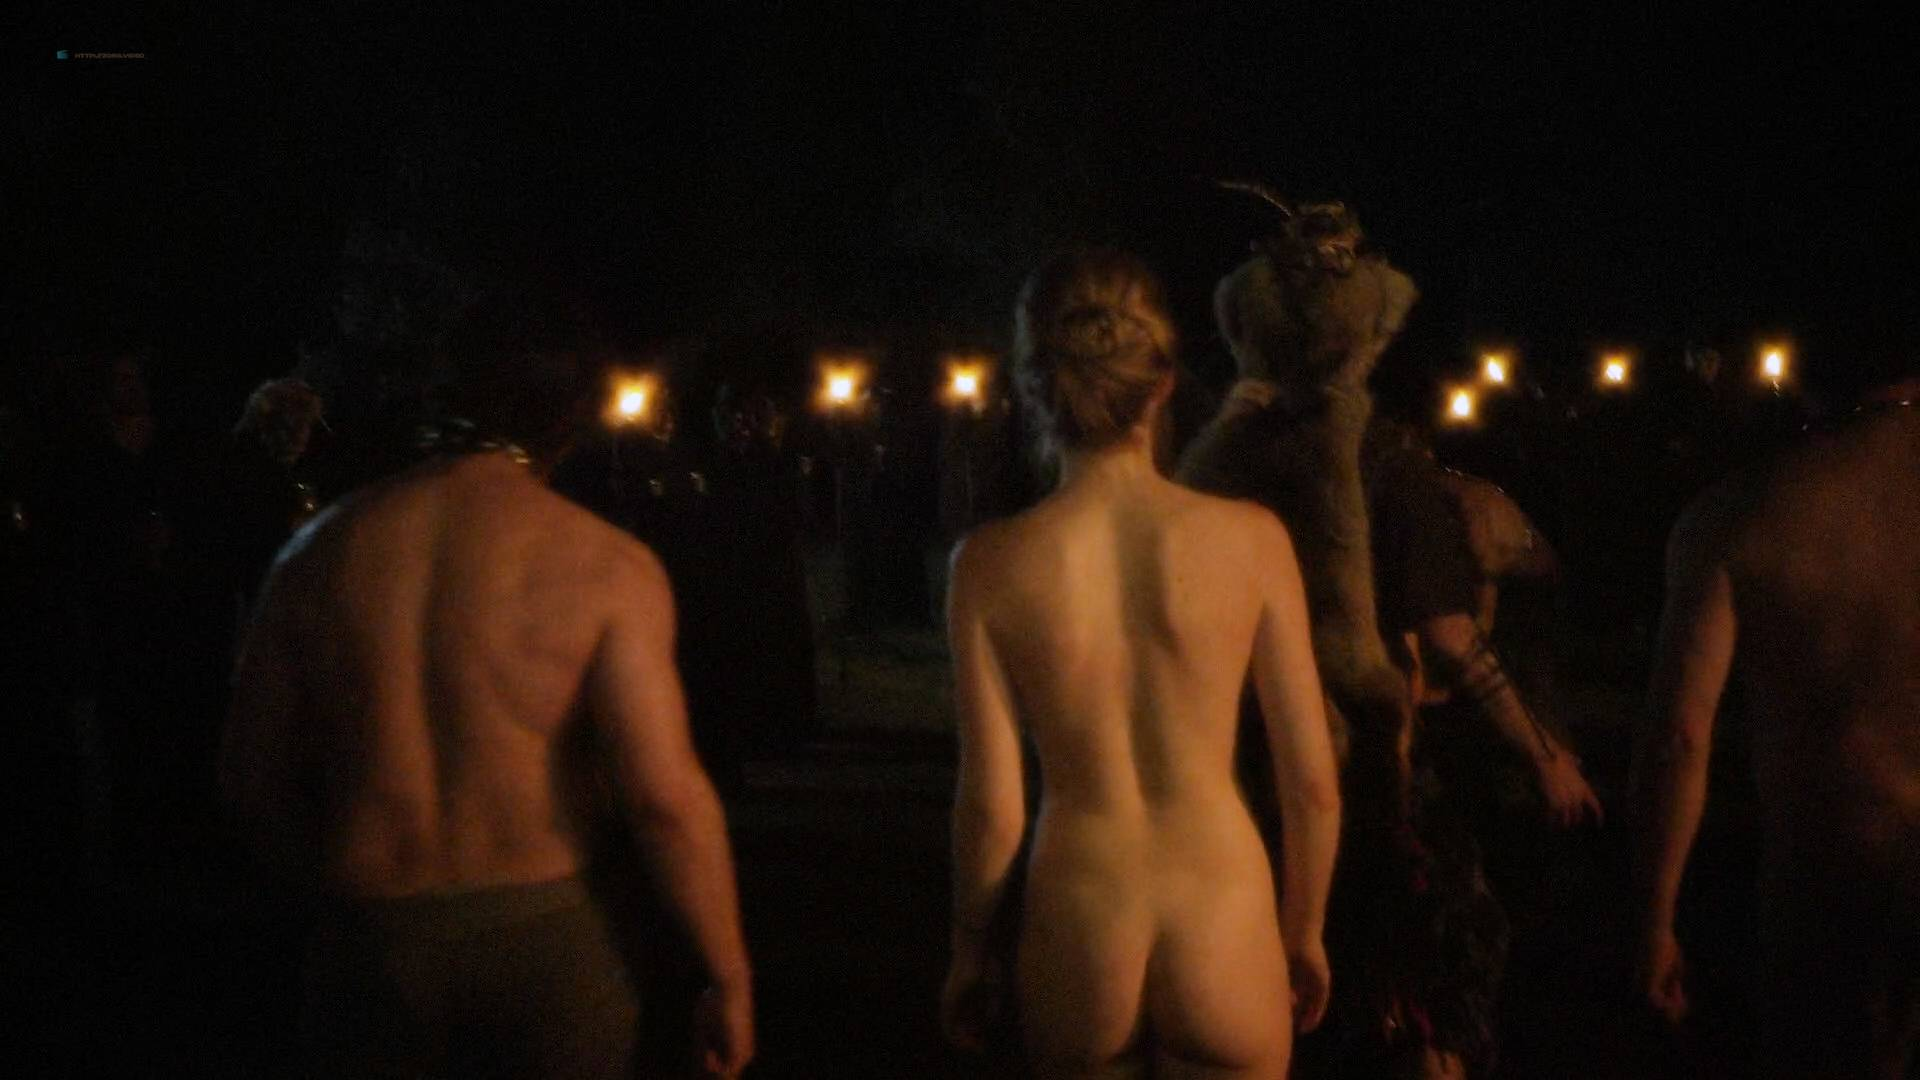 Allie Gallerani nude full frontal Amber Coney, Zoe Bleu, and other's nude too - The Institute (2017) HD 1080p Web (17)